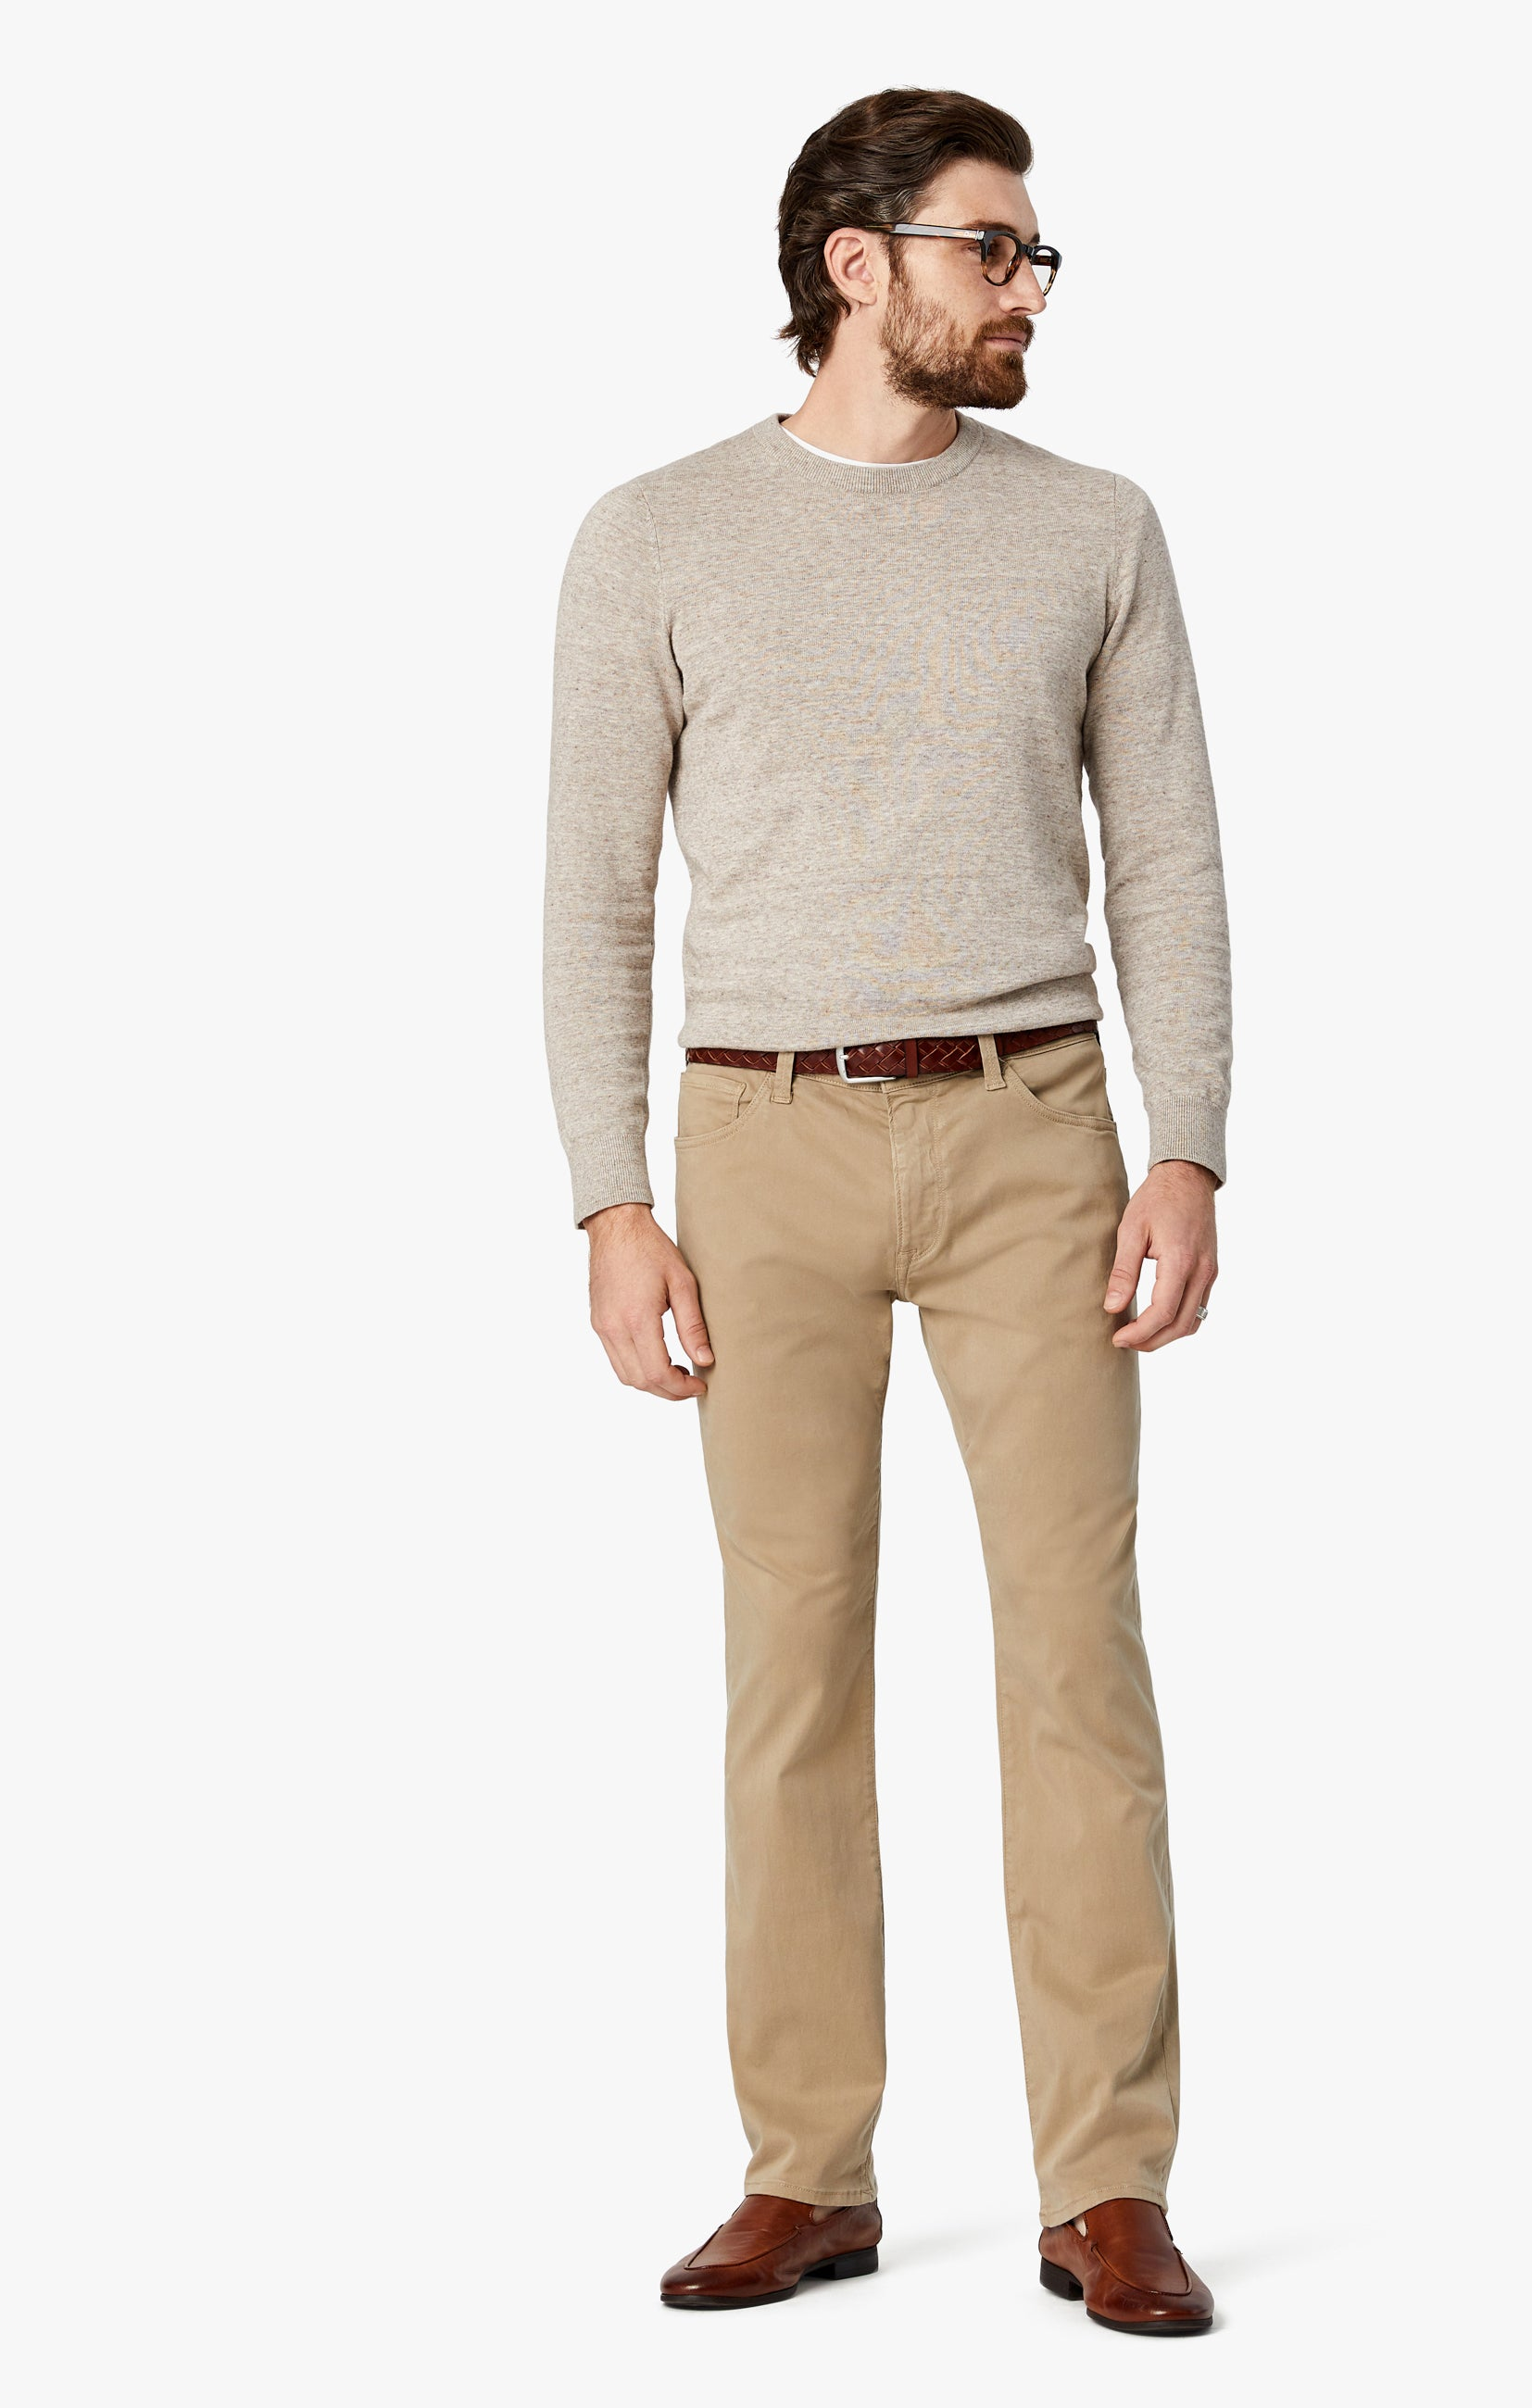 Courage Straight Leg Pants in Sand Twill Image 2